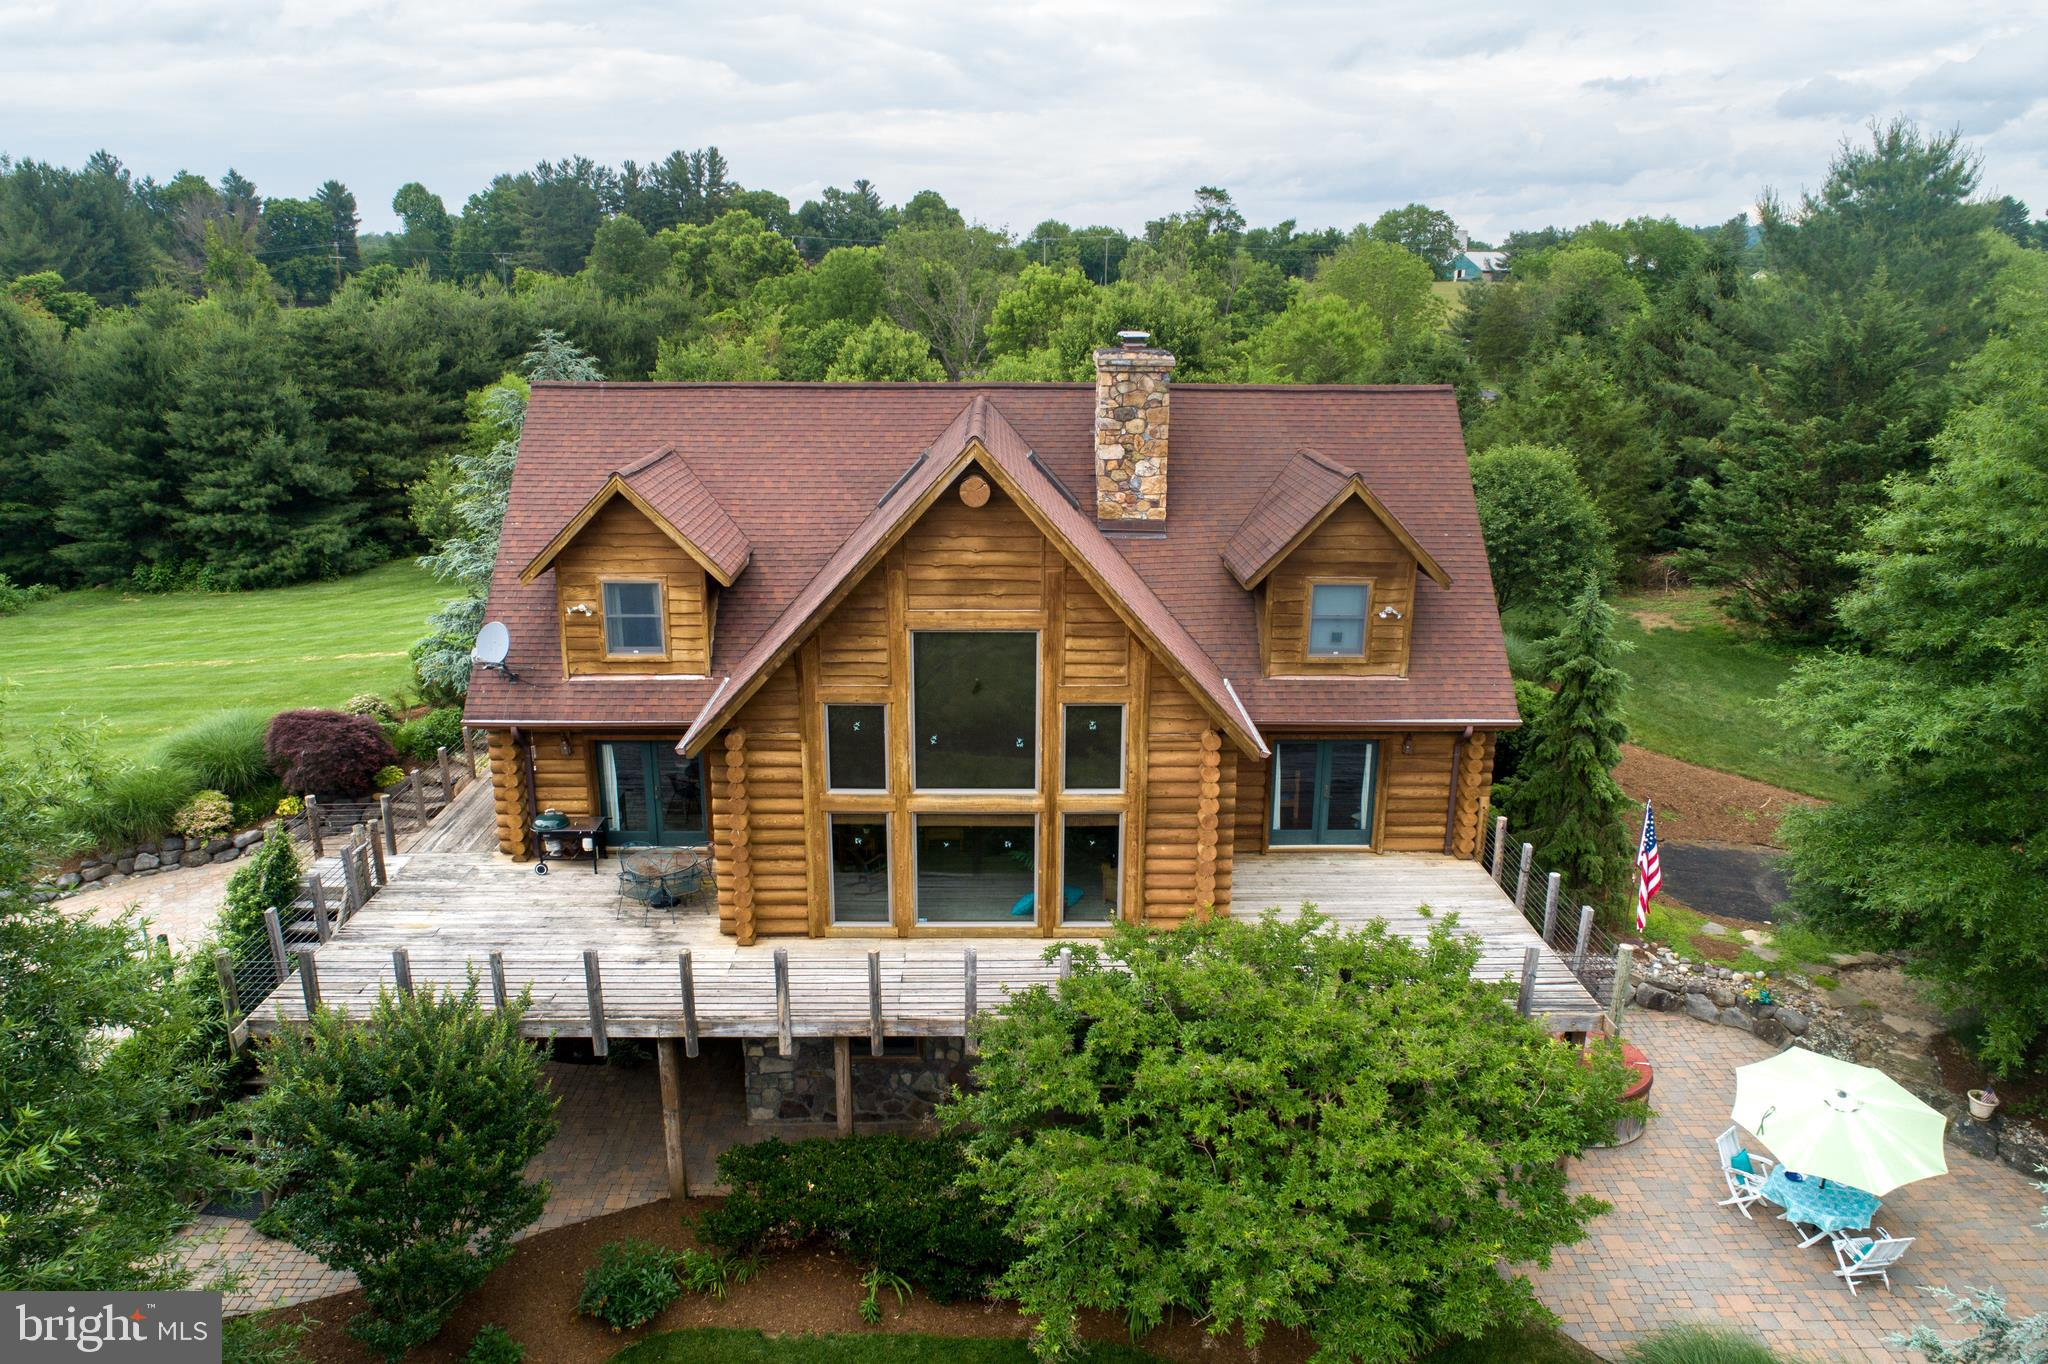 EXTRAORDINARY 4 BR LOG HOME--LIKE BEING ON VACATION IN PRIVATE 5 ACRE SETTING  W/YEAR-ROUND STREAM.  EXTENSIVE HARDSCAPE, LUSH LANDSCAPING.  MAIN LEVEL MASTER SUITE W/SITTING AREA, HW FLOOR.   GREAT RM W/VAULTED CEILING & MASSIVE STONE FIREPLACE;  2ND STORY OVERLOOK OFF STUDY/PLAY AREA;  HUGE UL 4TH BR BEING USED AS HOME OFFICE.   MANY UPSCALE FEATURES.   LL W/FPL OPENS ONTO TERRACE;  IN-LAW OR AU-PAIR POSSIBLE.  GARAGE W/WORK AREA PLUS HUGE SHED W/LOFT WHICH COULD BE USED FOR ANIMALS.  EASY COMMUTING & NEAR ALL AMENITIES.  ****$10,000 BUYER CLOSING CREDIT****QUICK SETTLEMENT POSSIBLE***MOTIVATED SELLERS***